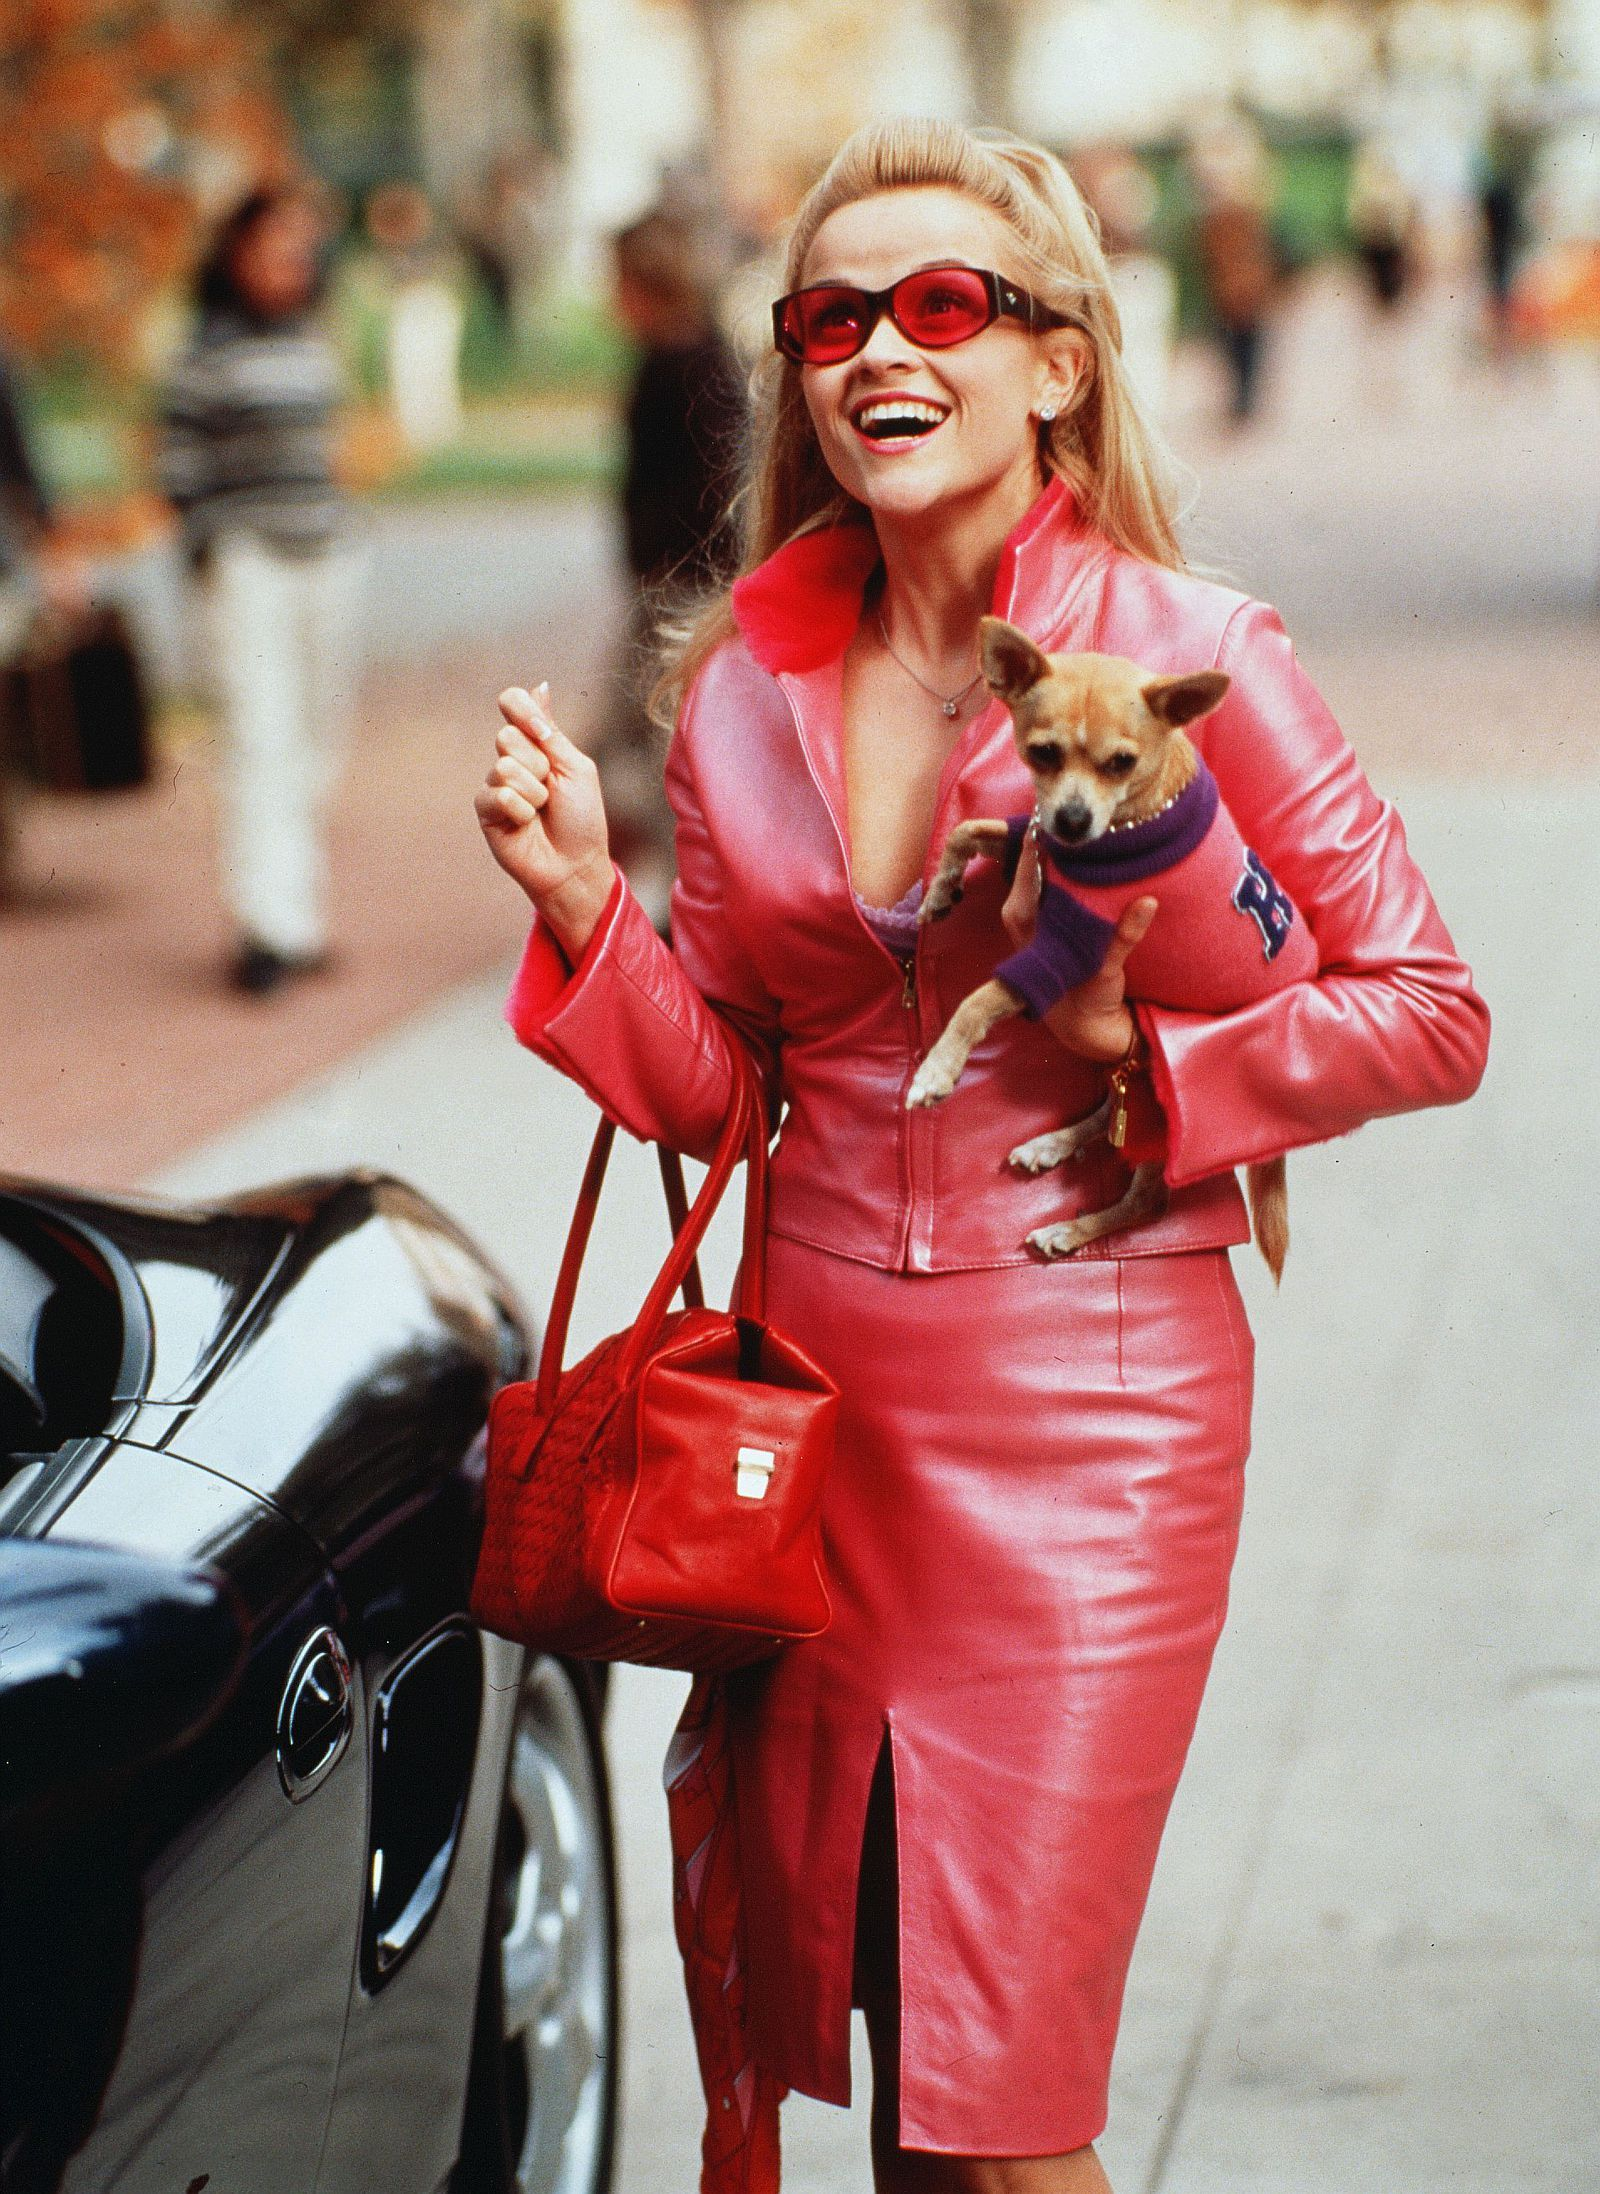 All The Iconic Movie Looks Ariana Grande Recreated in Her  Thank U, Next  Video is part of Legally blonde movie, Blonde movie, Elle woods, Legally blonde, Reese witherspoon legally blonde, Iconic movies - She taught us love, she taught us patience, she gave us the greatest music video of the year